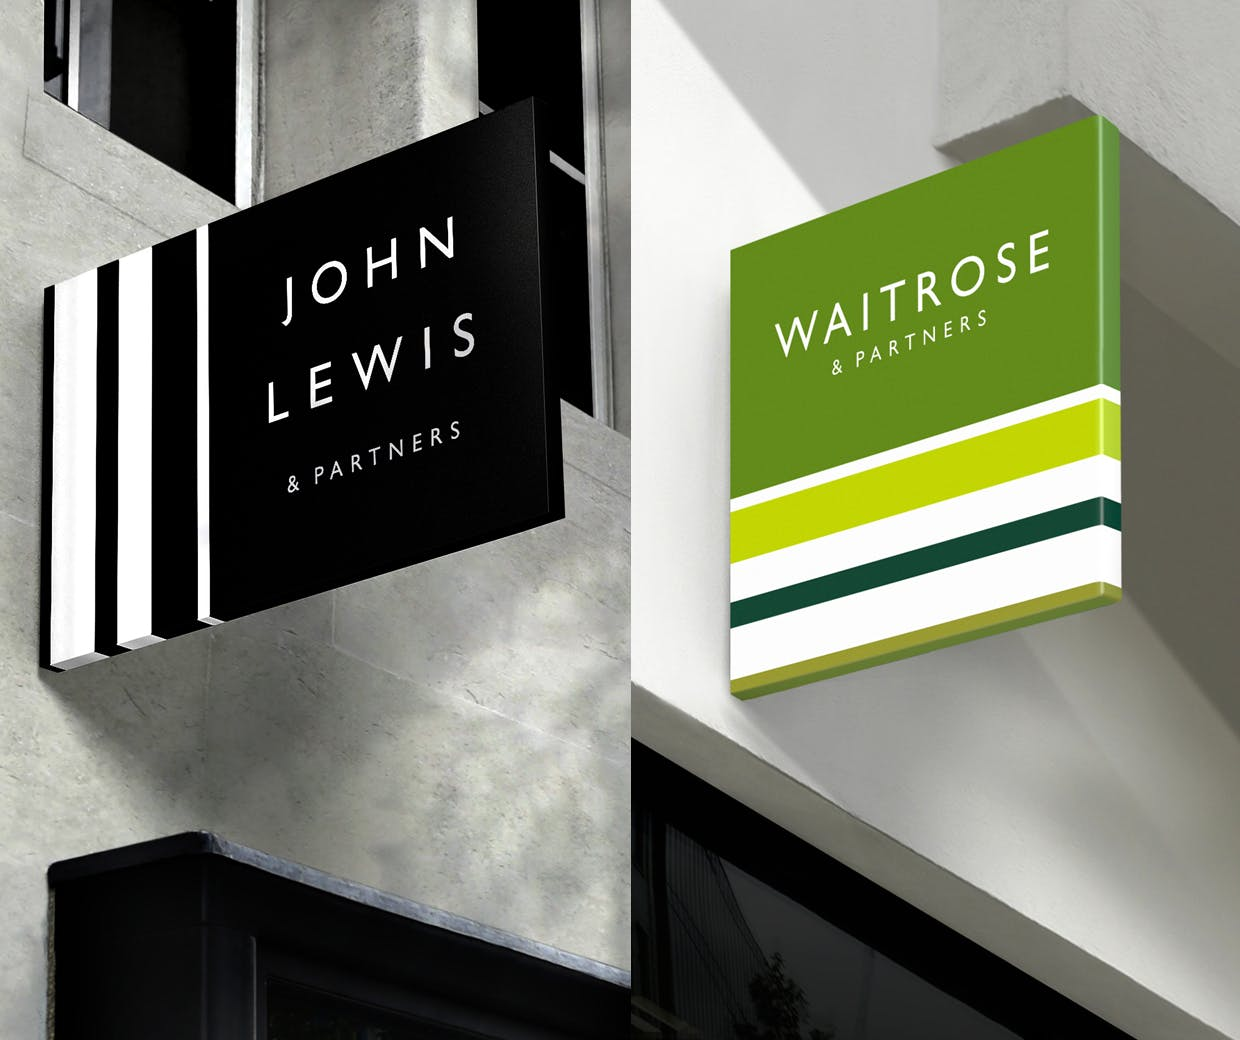 Is John Lewis and Waitrose's joint marketing strategy working?